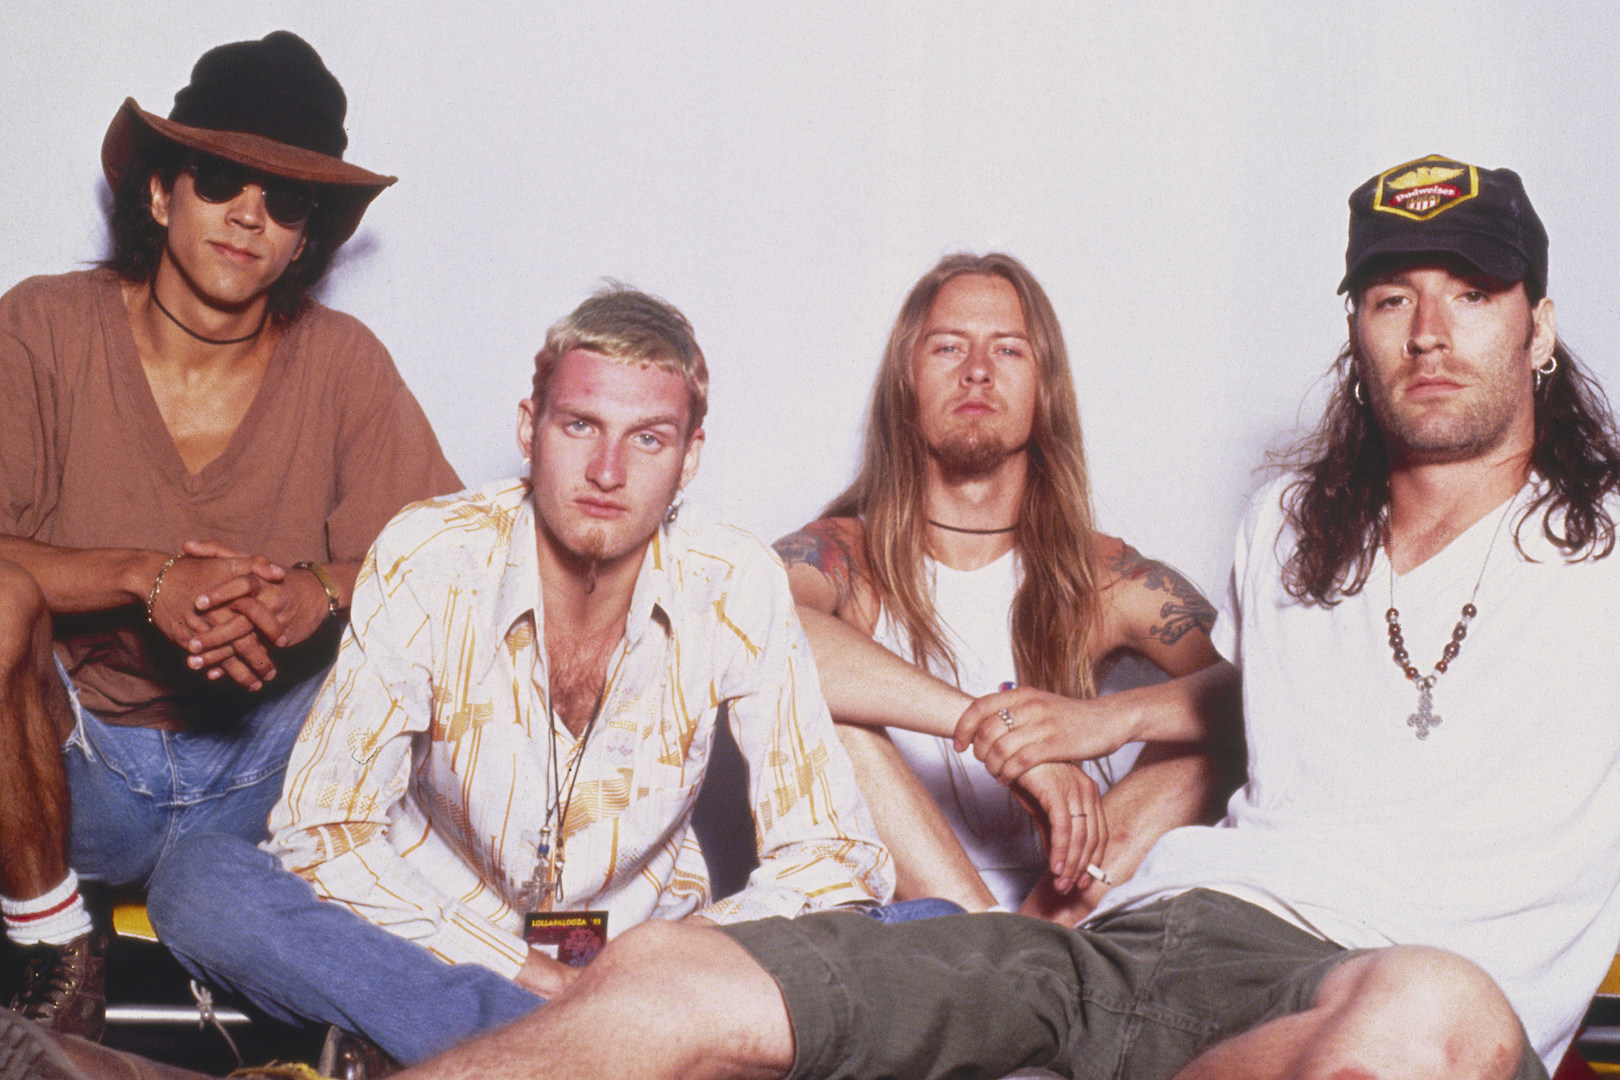 Alice in Chains' 'Jar of Flies' EP: 10 Facts Only Superfans Would Know